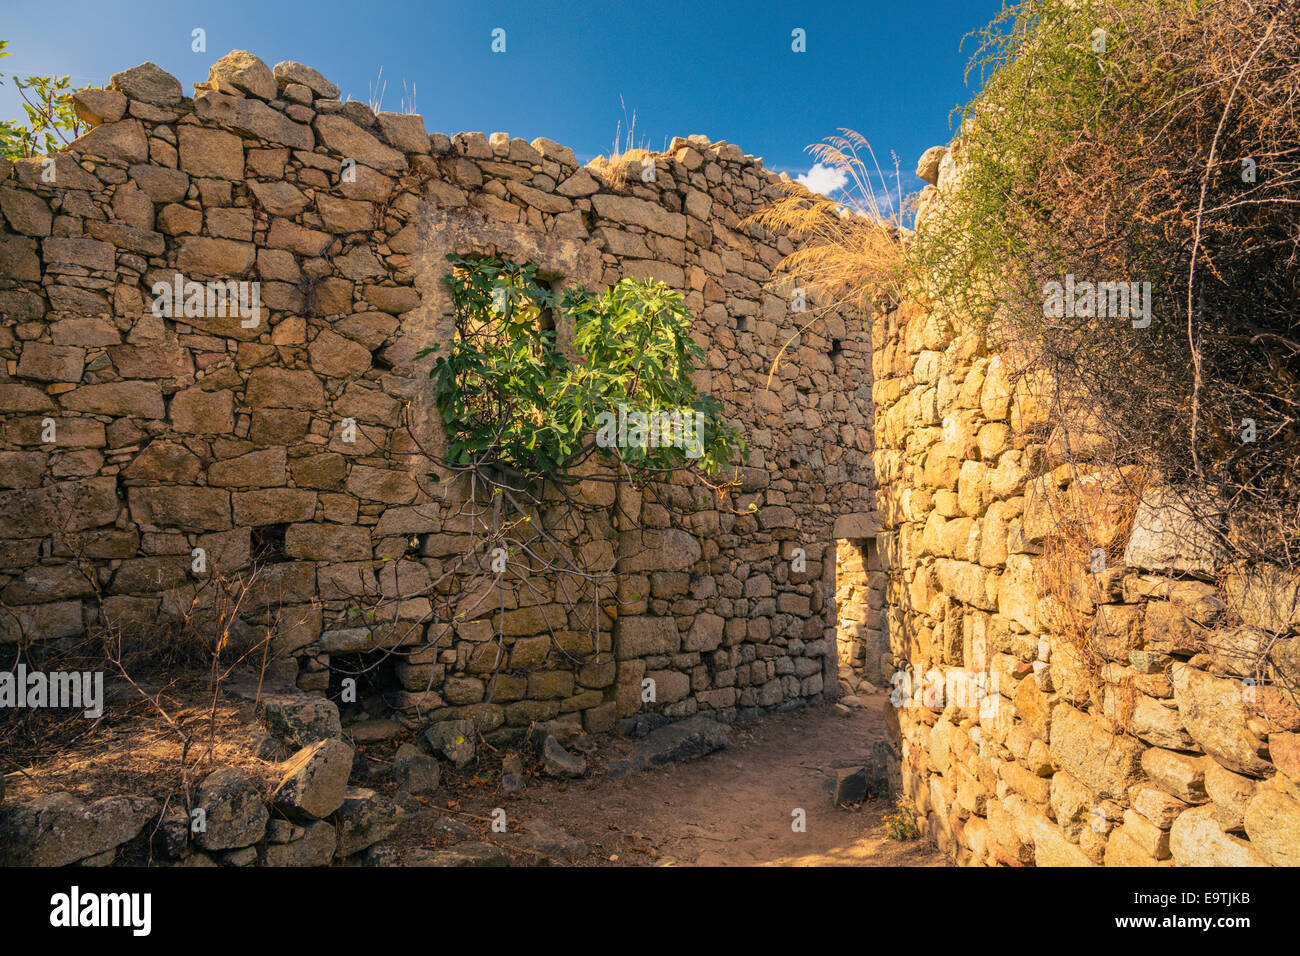 Old walls in the ruins of Occi, Corsica - Stock Image